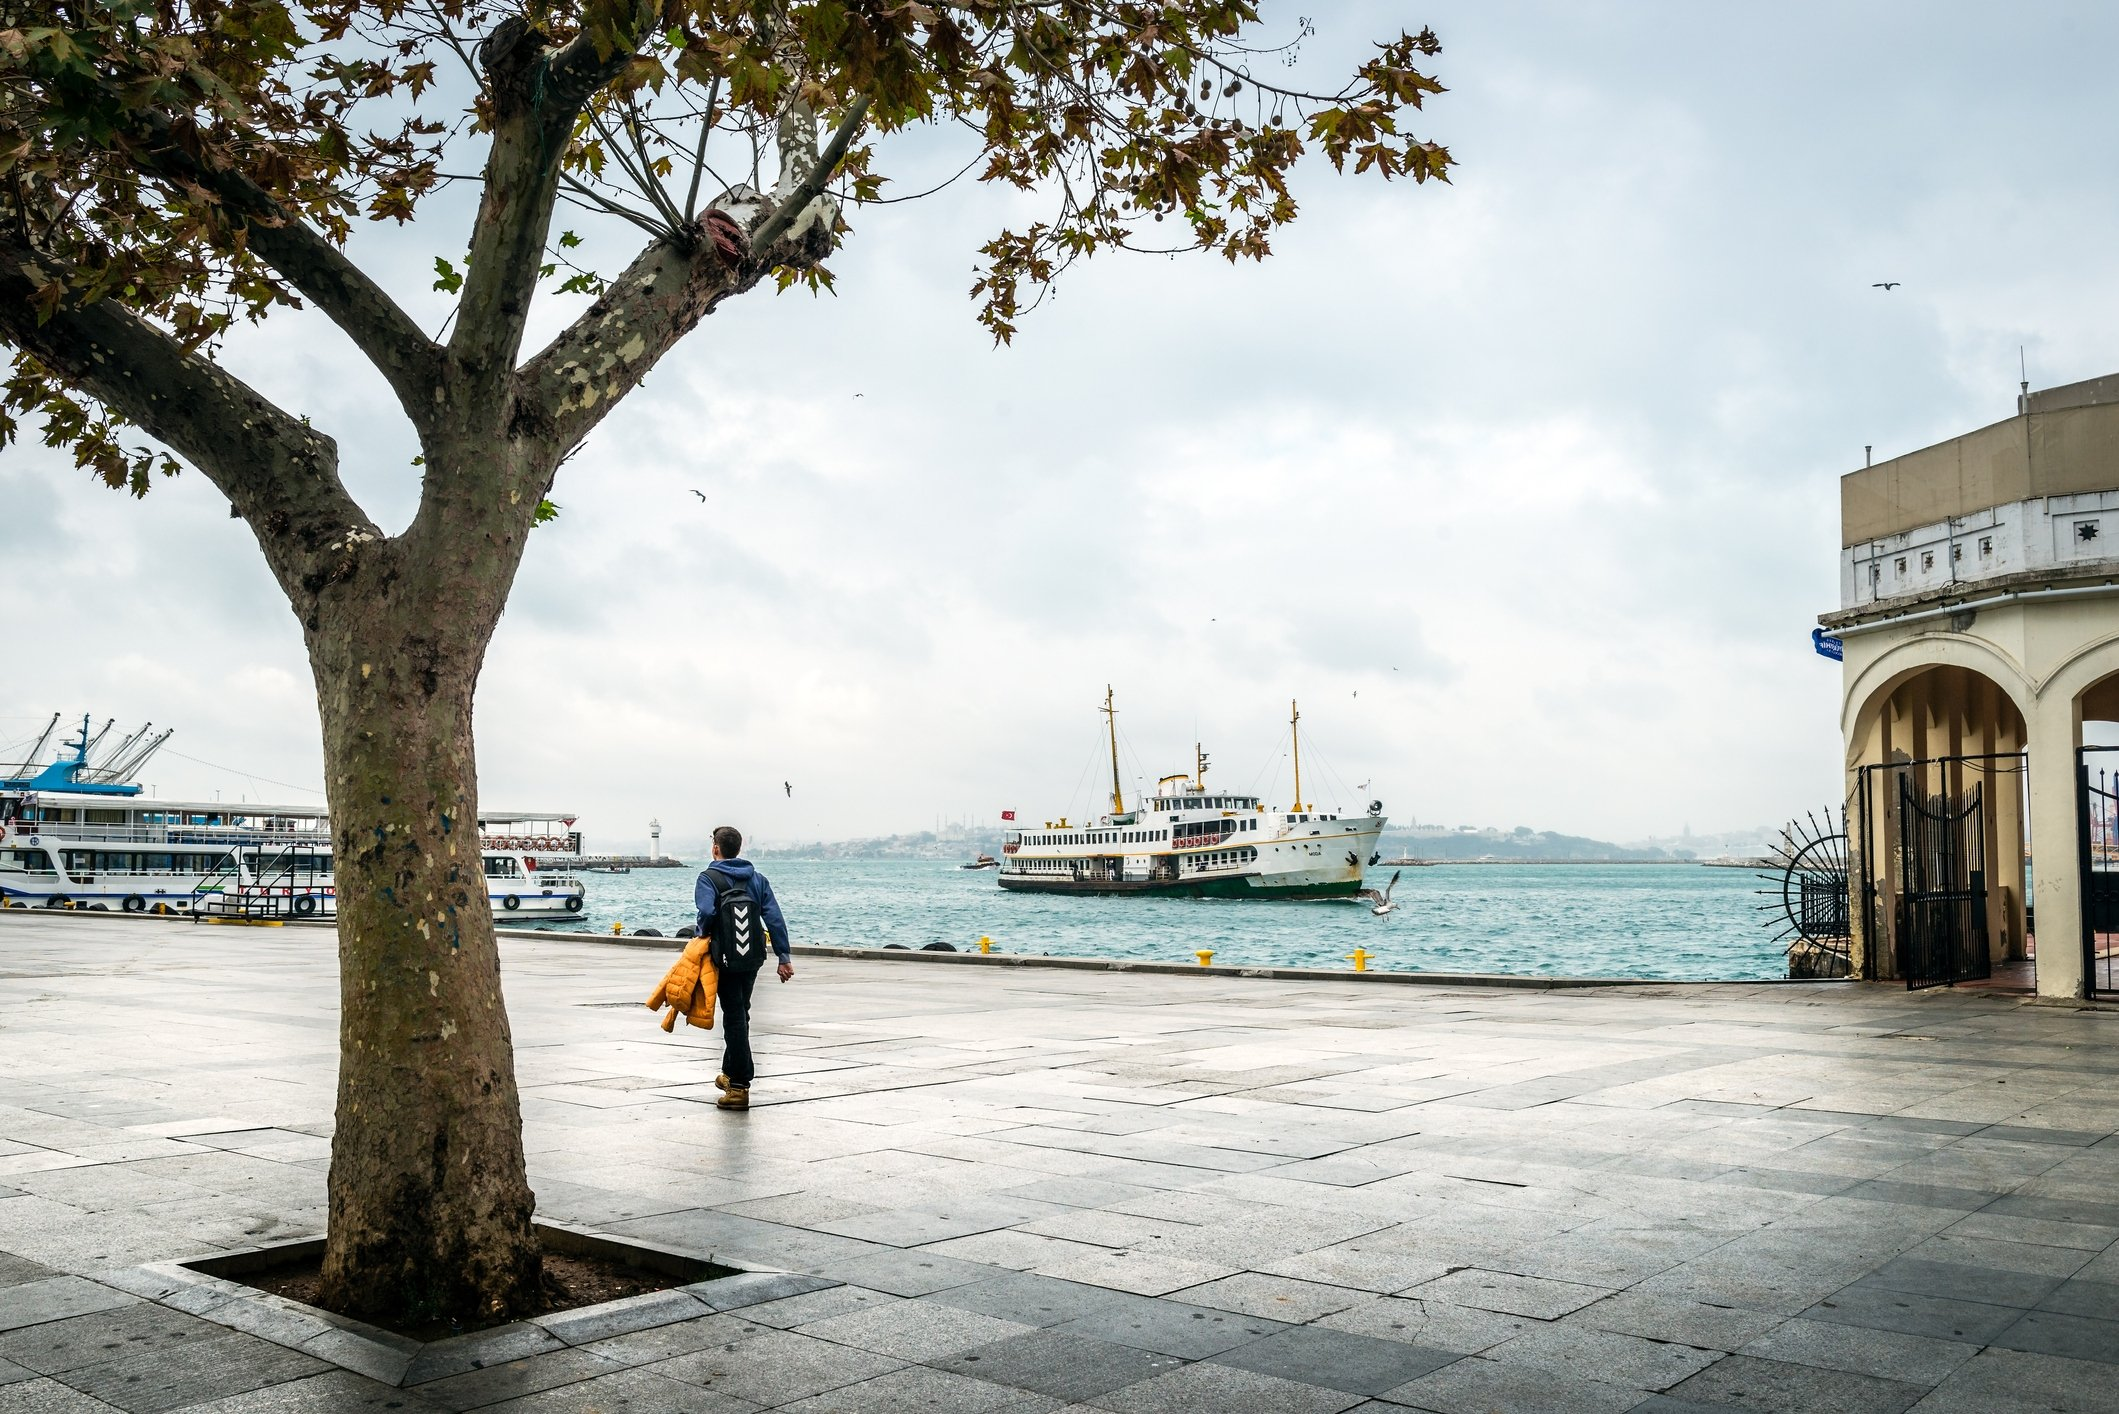 Kadıköy (pictured) is one of the most popular places for expats living in Istanbul. (iStock Photo)